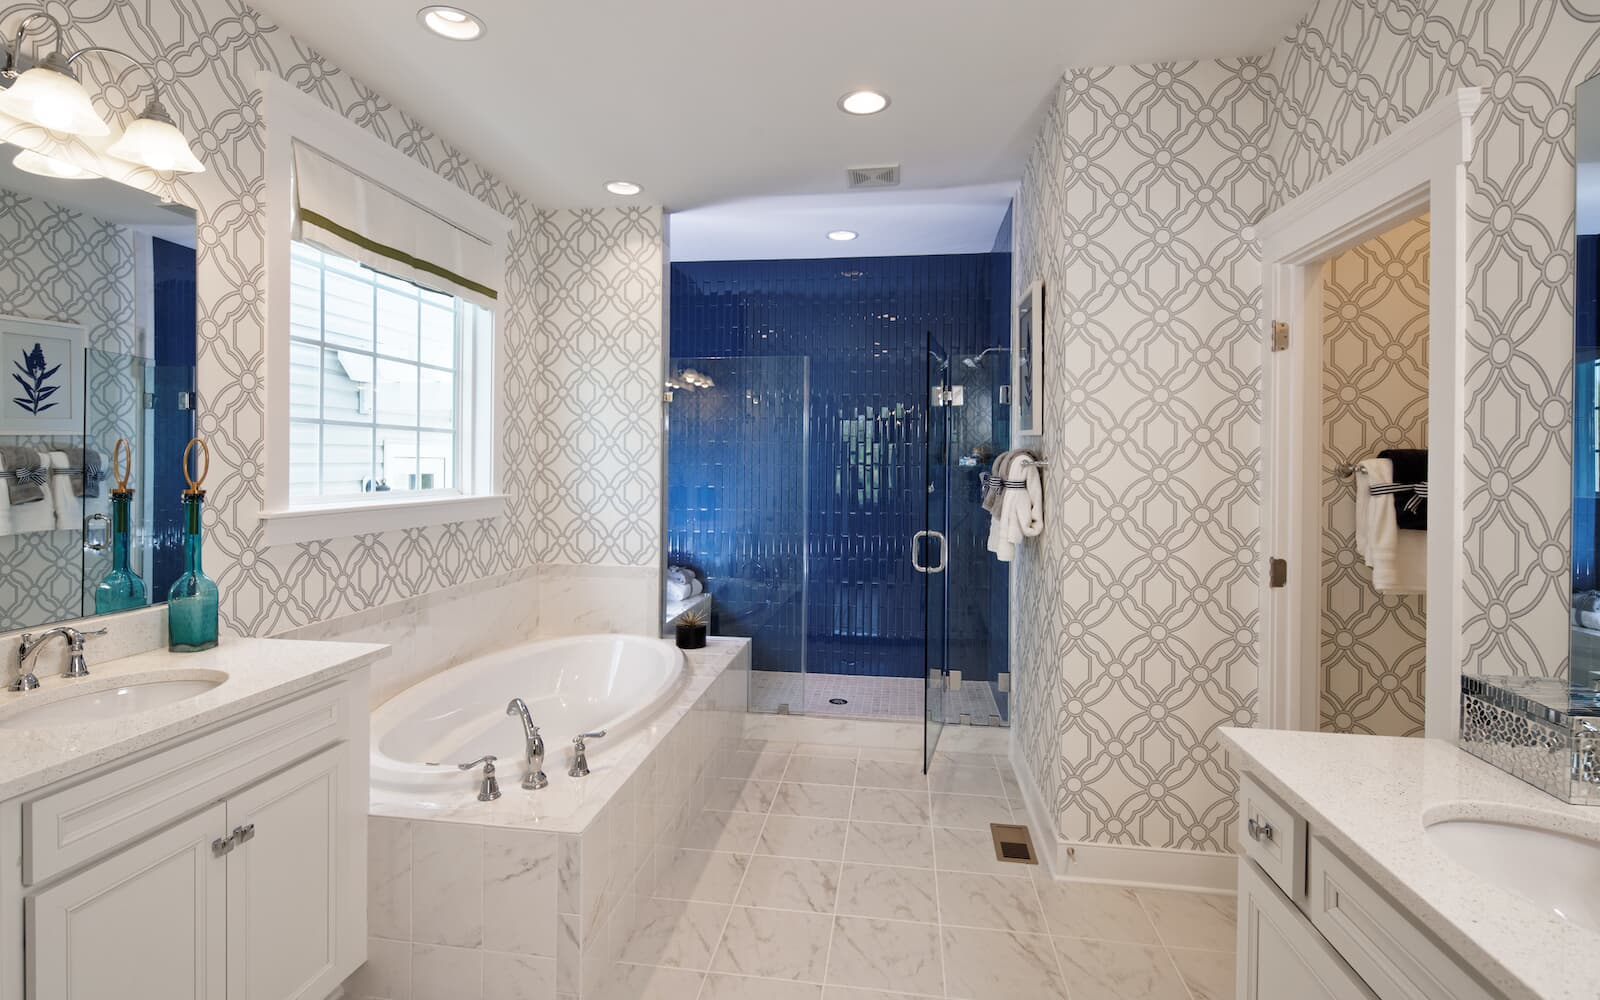 Cresswell-bathroom-single-family-homes-leesburg-va-waterford-manor-brookfield-residential